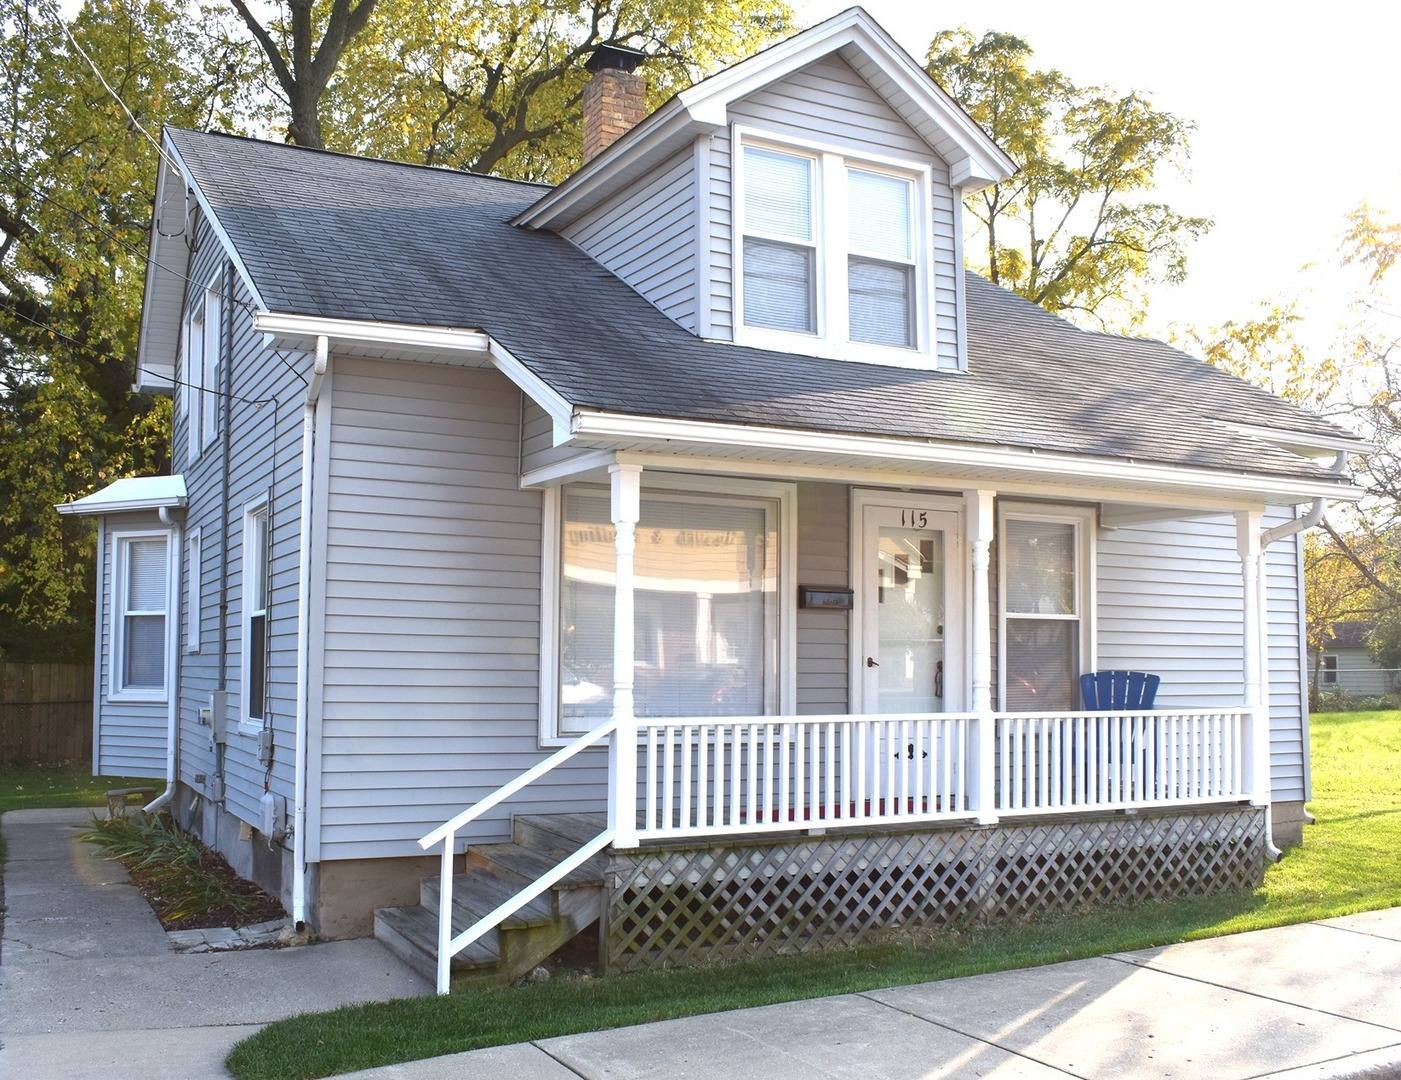 Photo for 115 Cary Street, Cary, IL 60013 (MLS # 10904722)